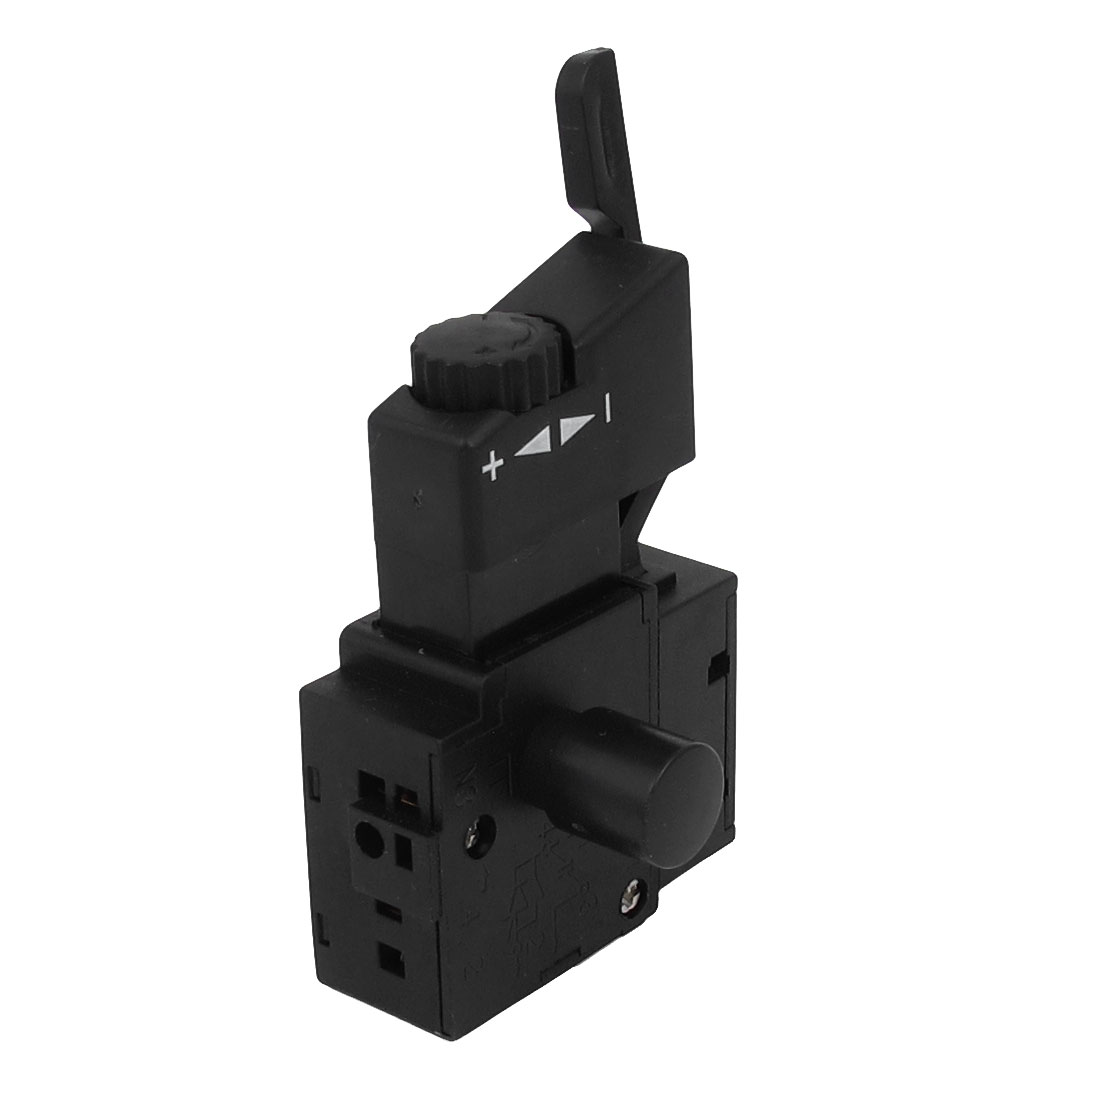 FA2-6/1BEK AC 250V 6(6)A DPST Momentary Trigger Button Switch for Electric Drill Power Tool